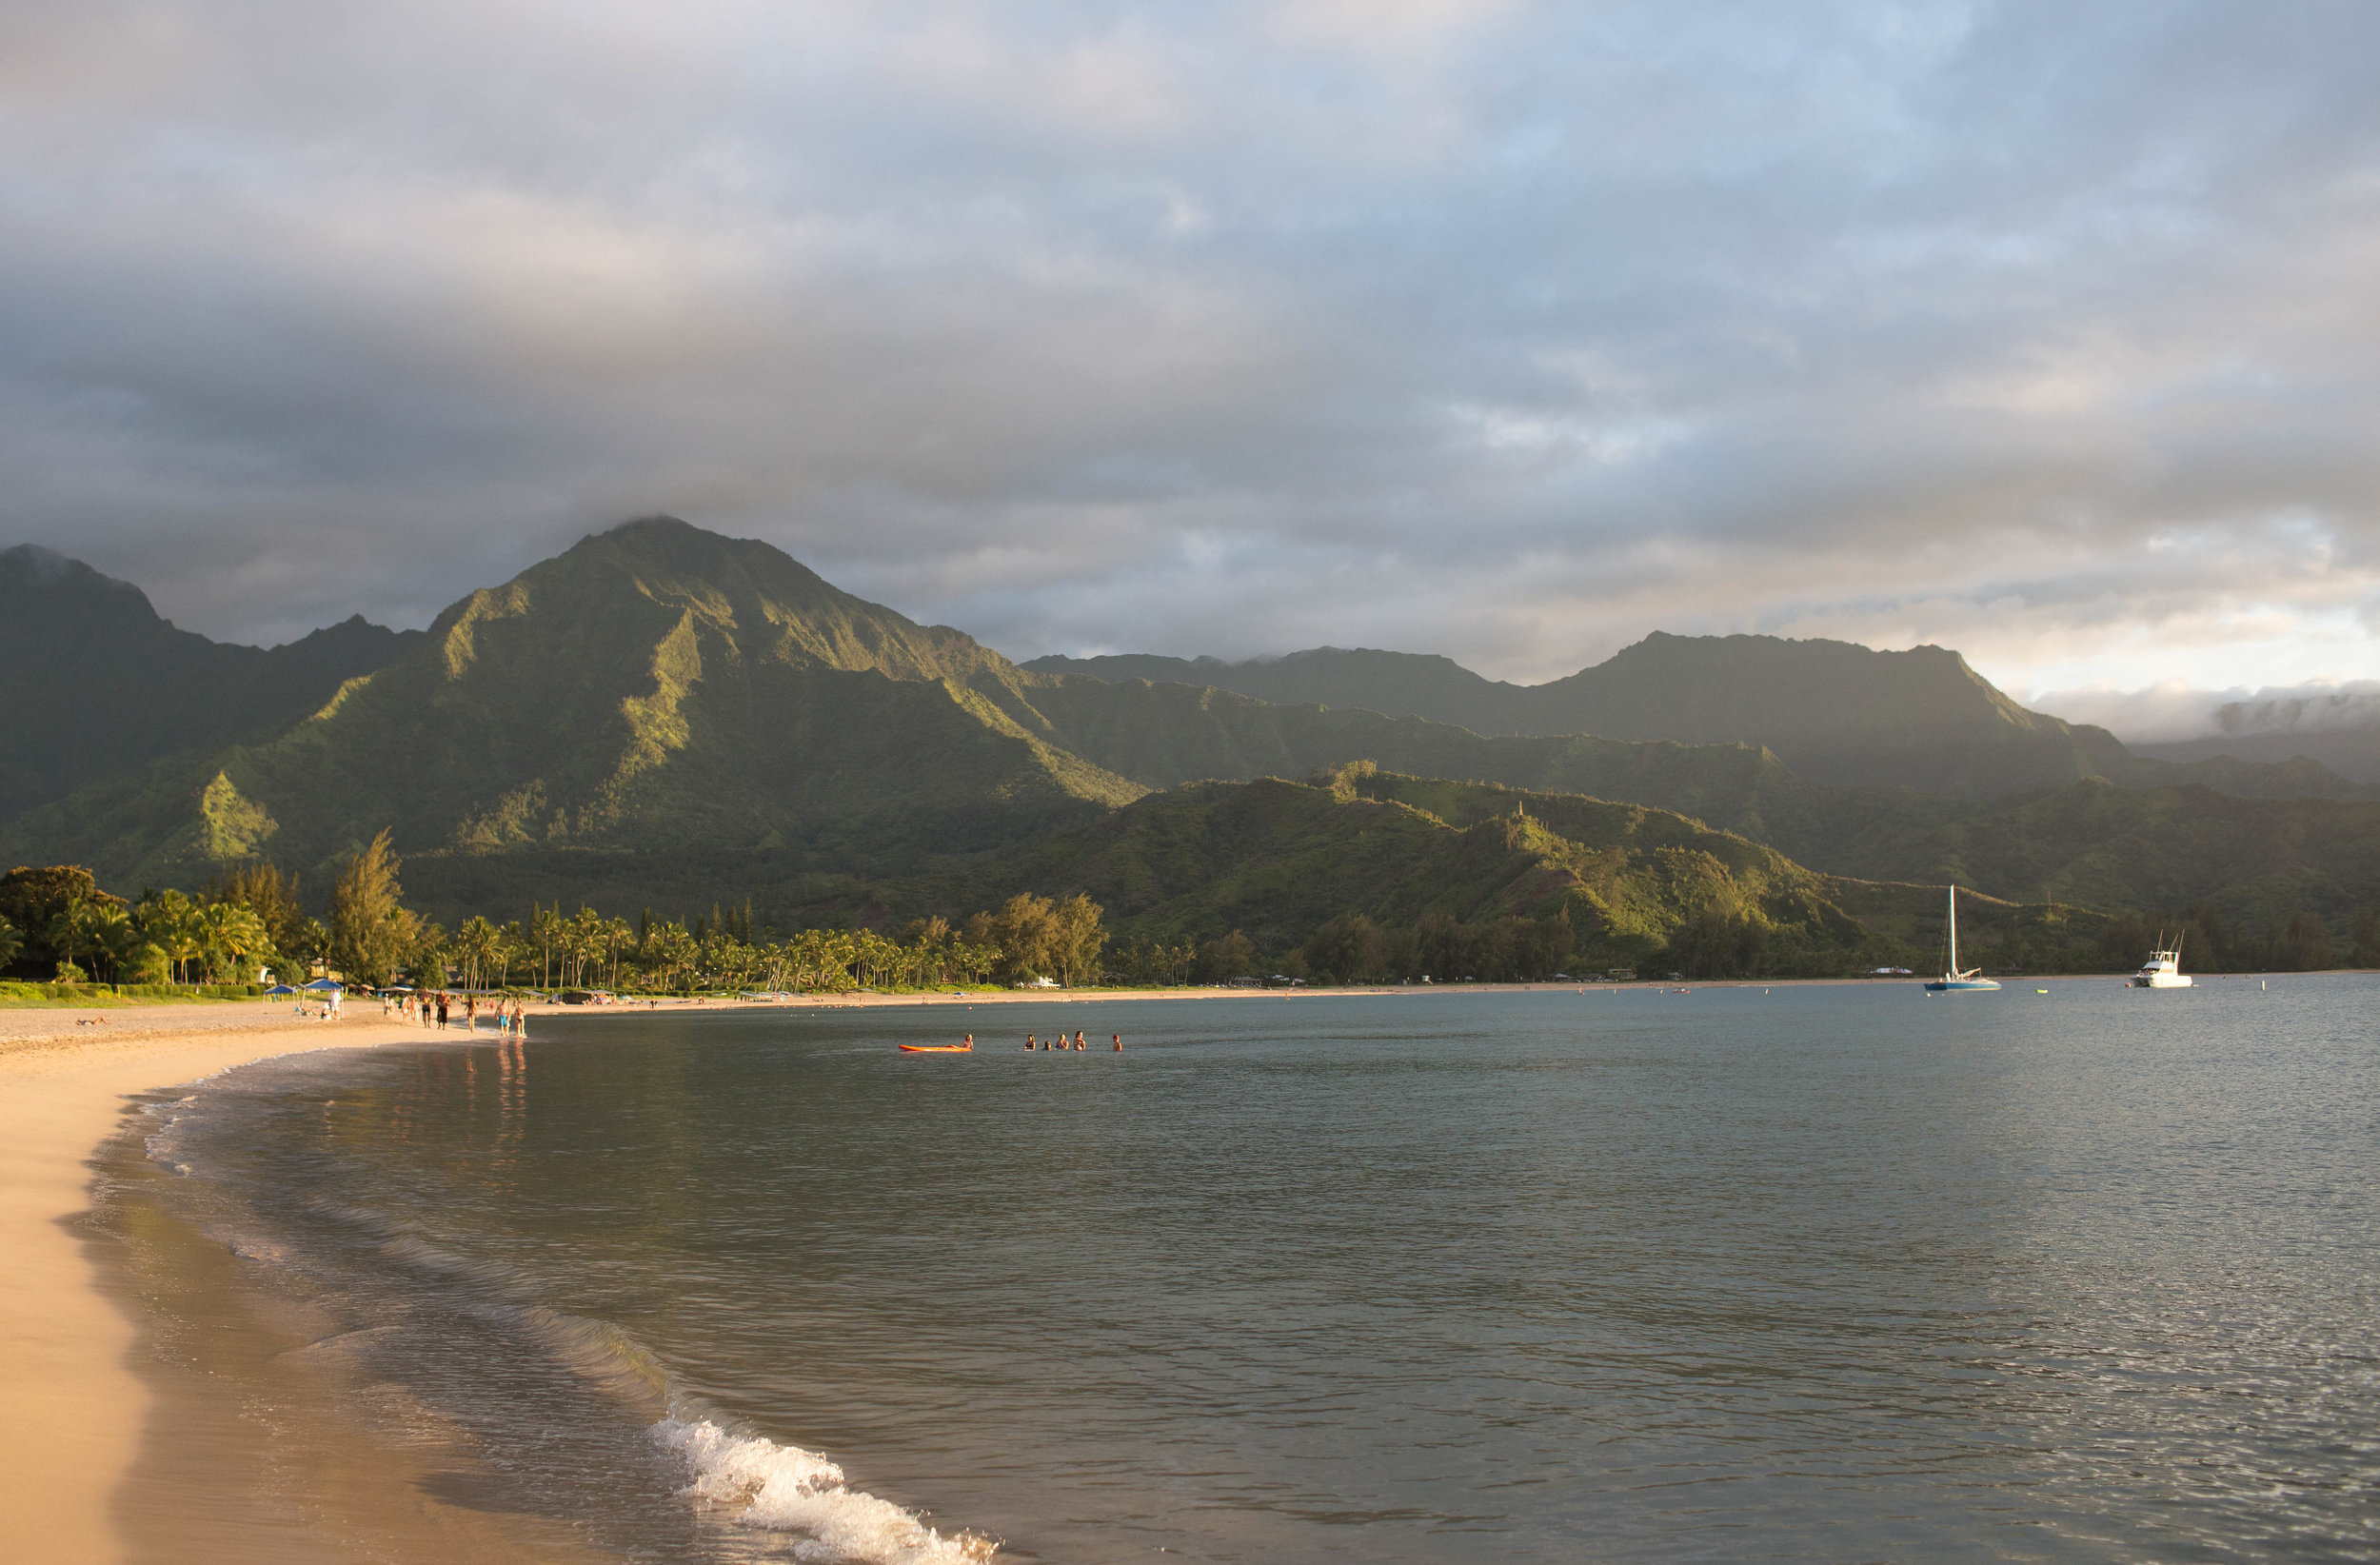 Hanalei Bay - Hanalei Bay lies on the north shore of the island stretching along roughly 2 miles of beaches. The town of Hanalei is easily one of our favorite spots on the island filled with shave ice, delicious food & great shops!